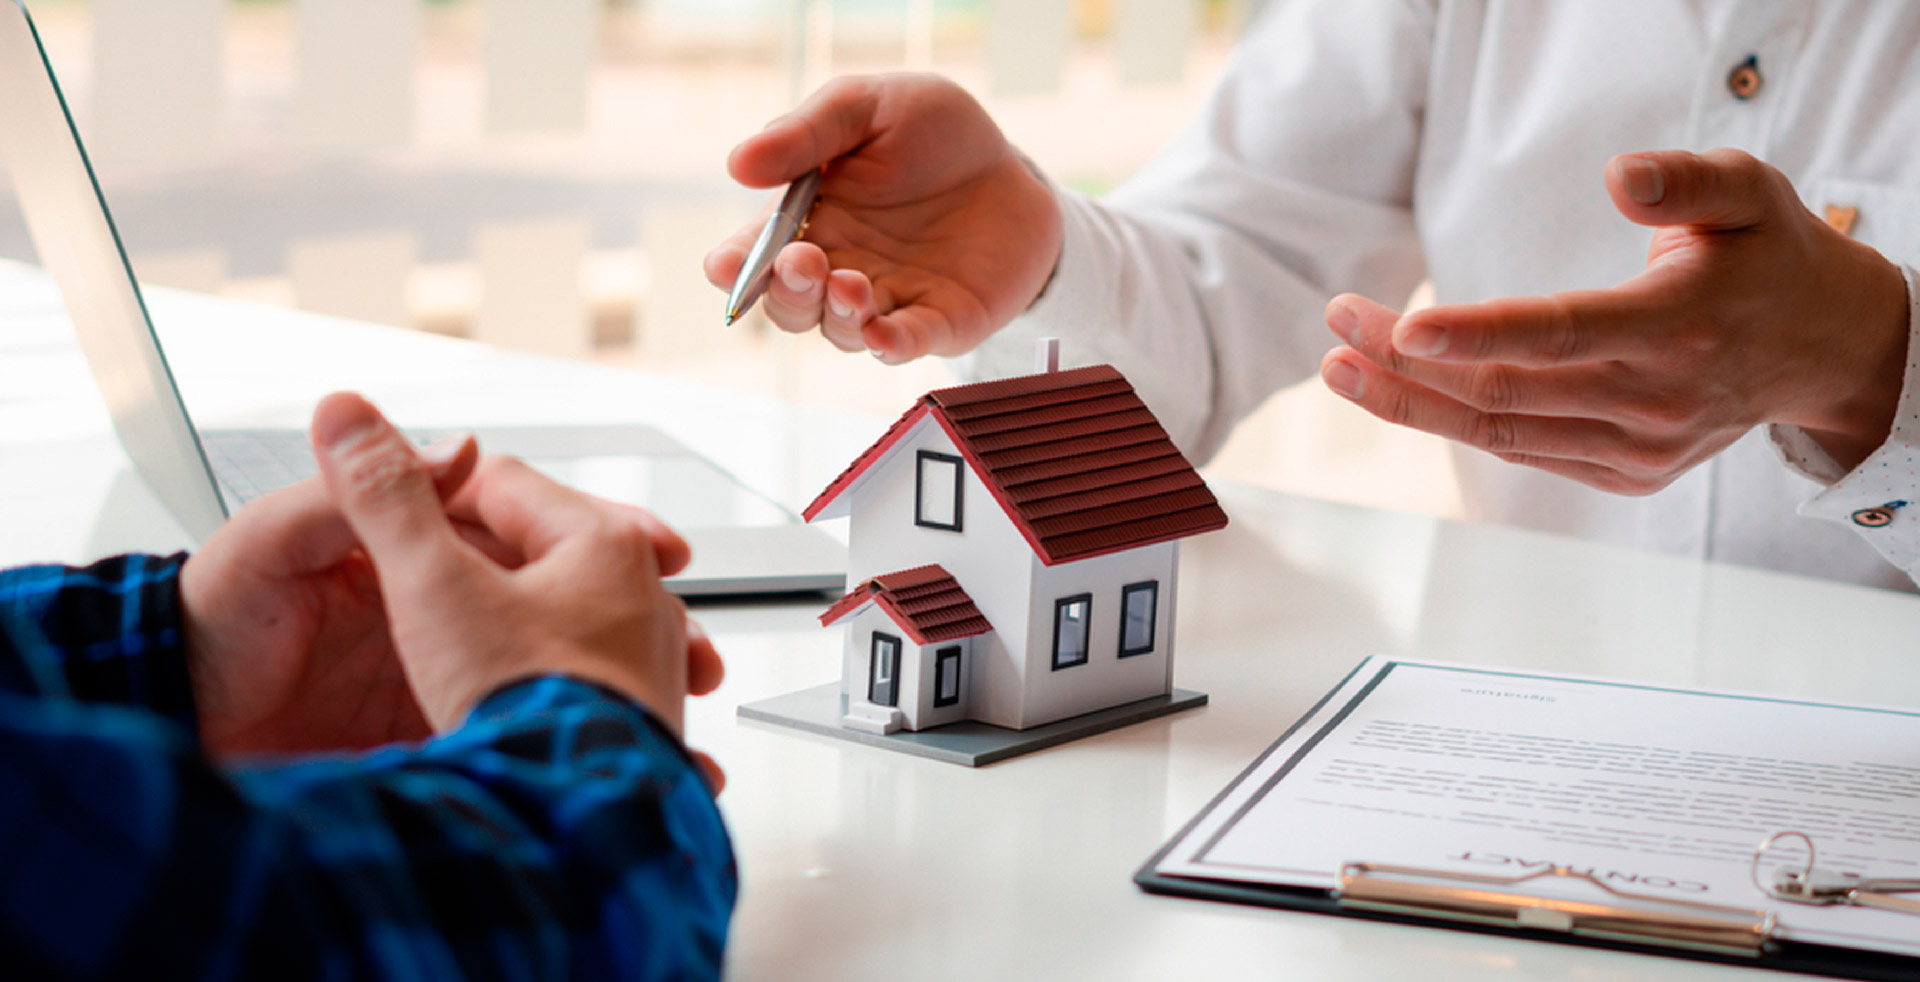 How to Become a Successful Property Dealer?